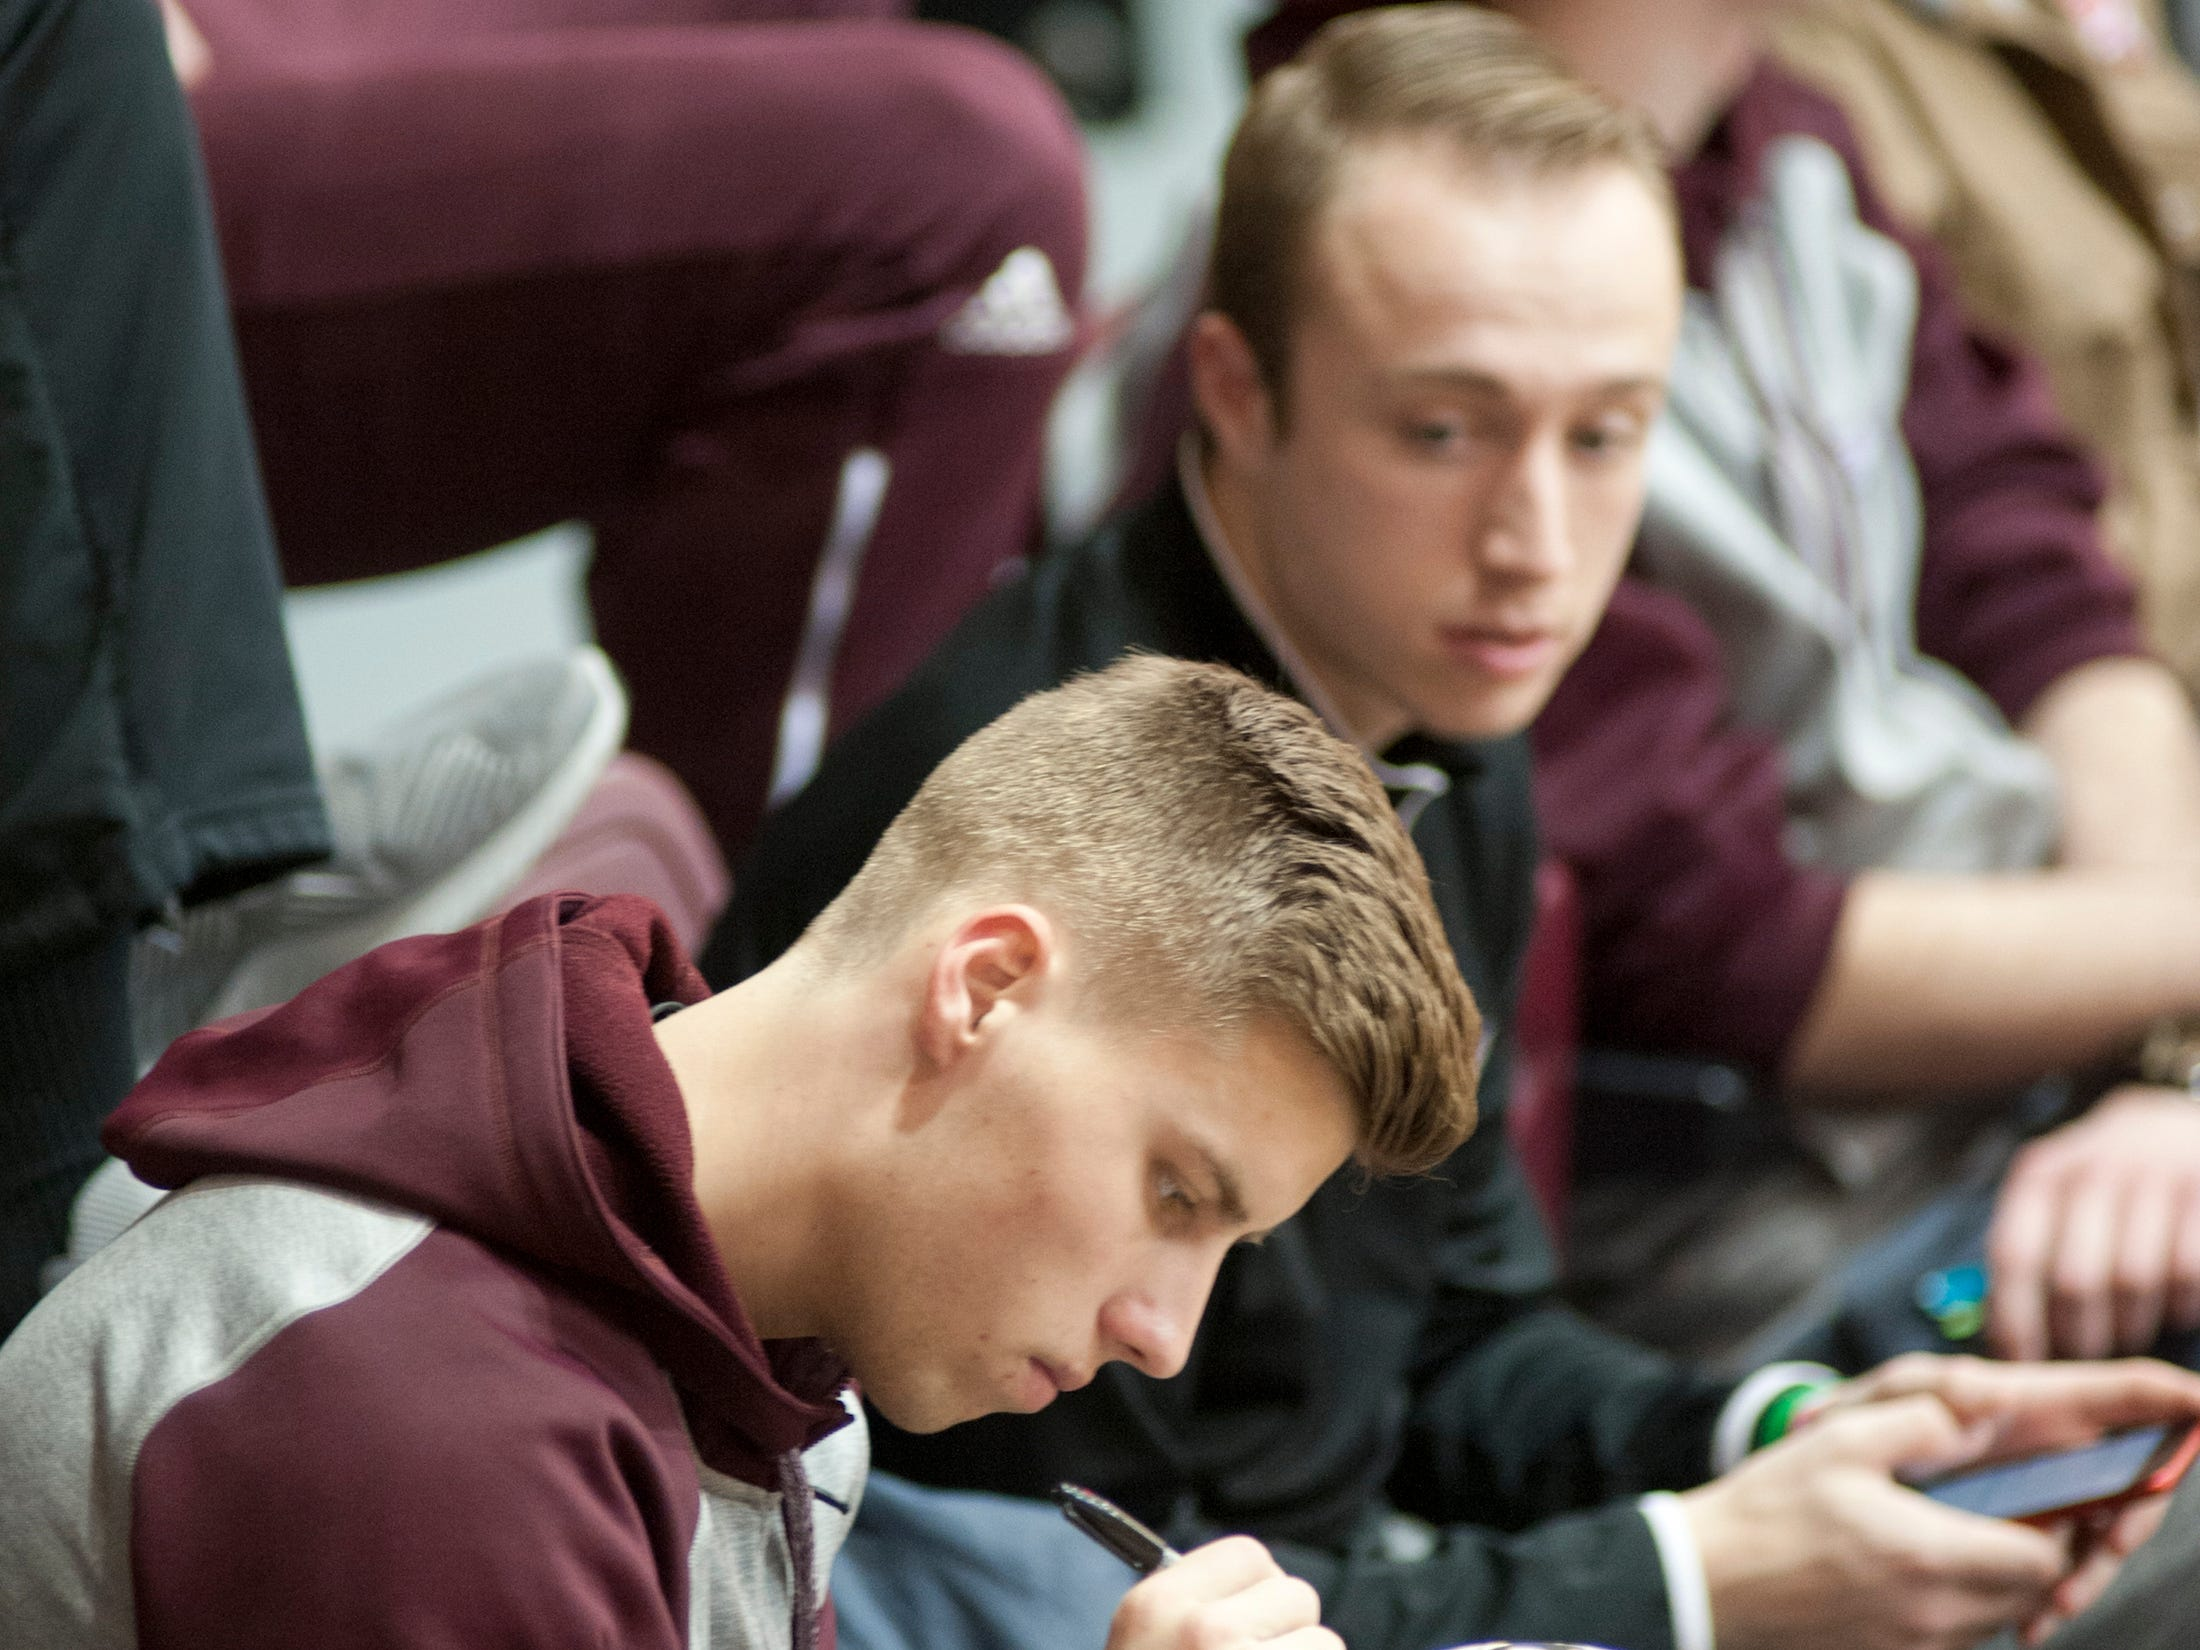 Bellarmine guard Juston Betz and his teammates sign a basketball for a staffer's son's birthday present as the team watches the first game of the Bellarmine Classic basketball tournament from the bleachers.18 December 2018